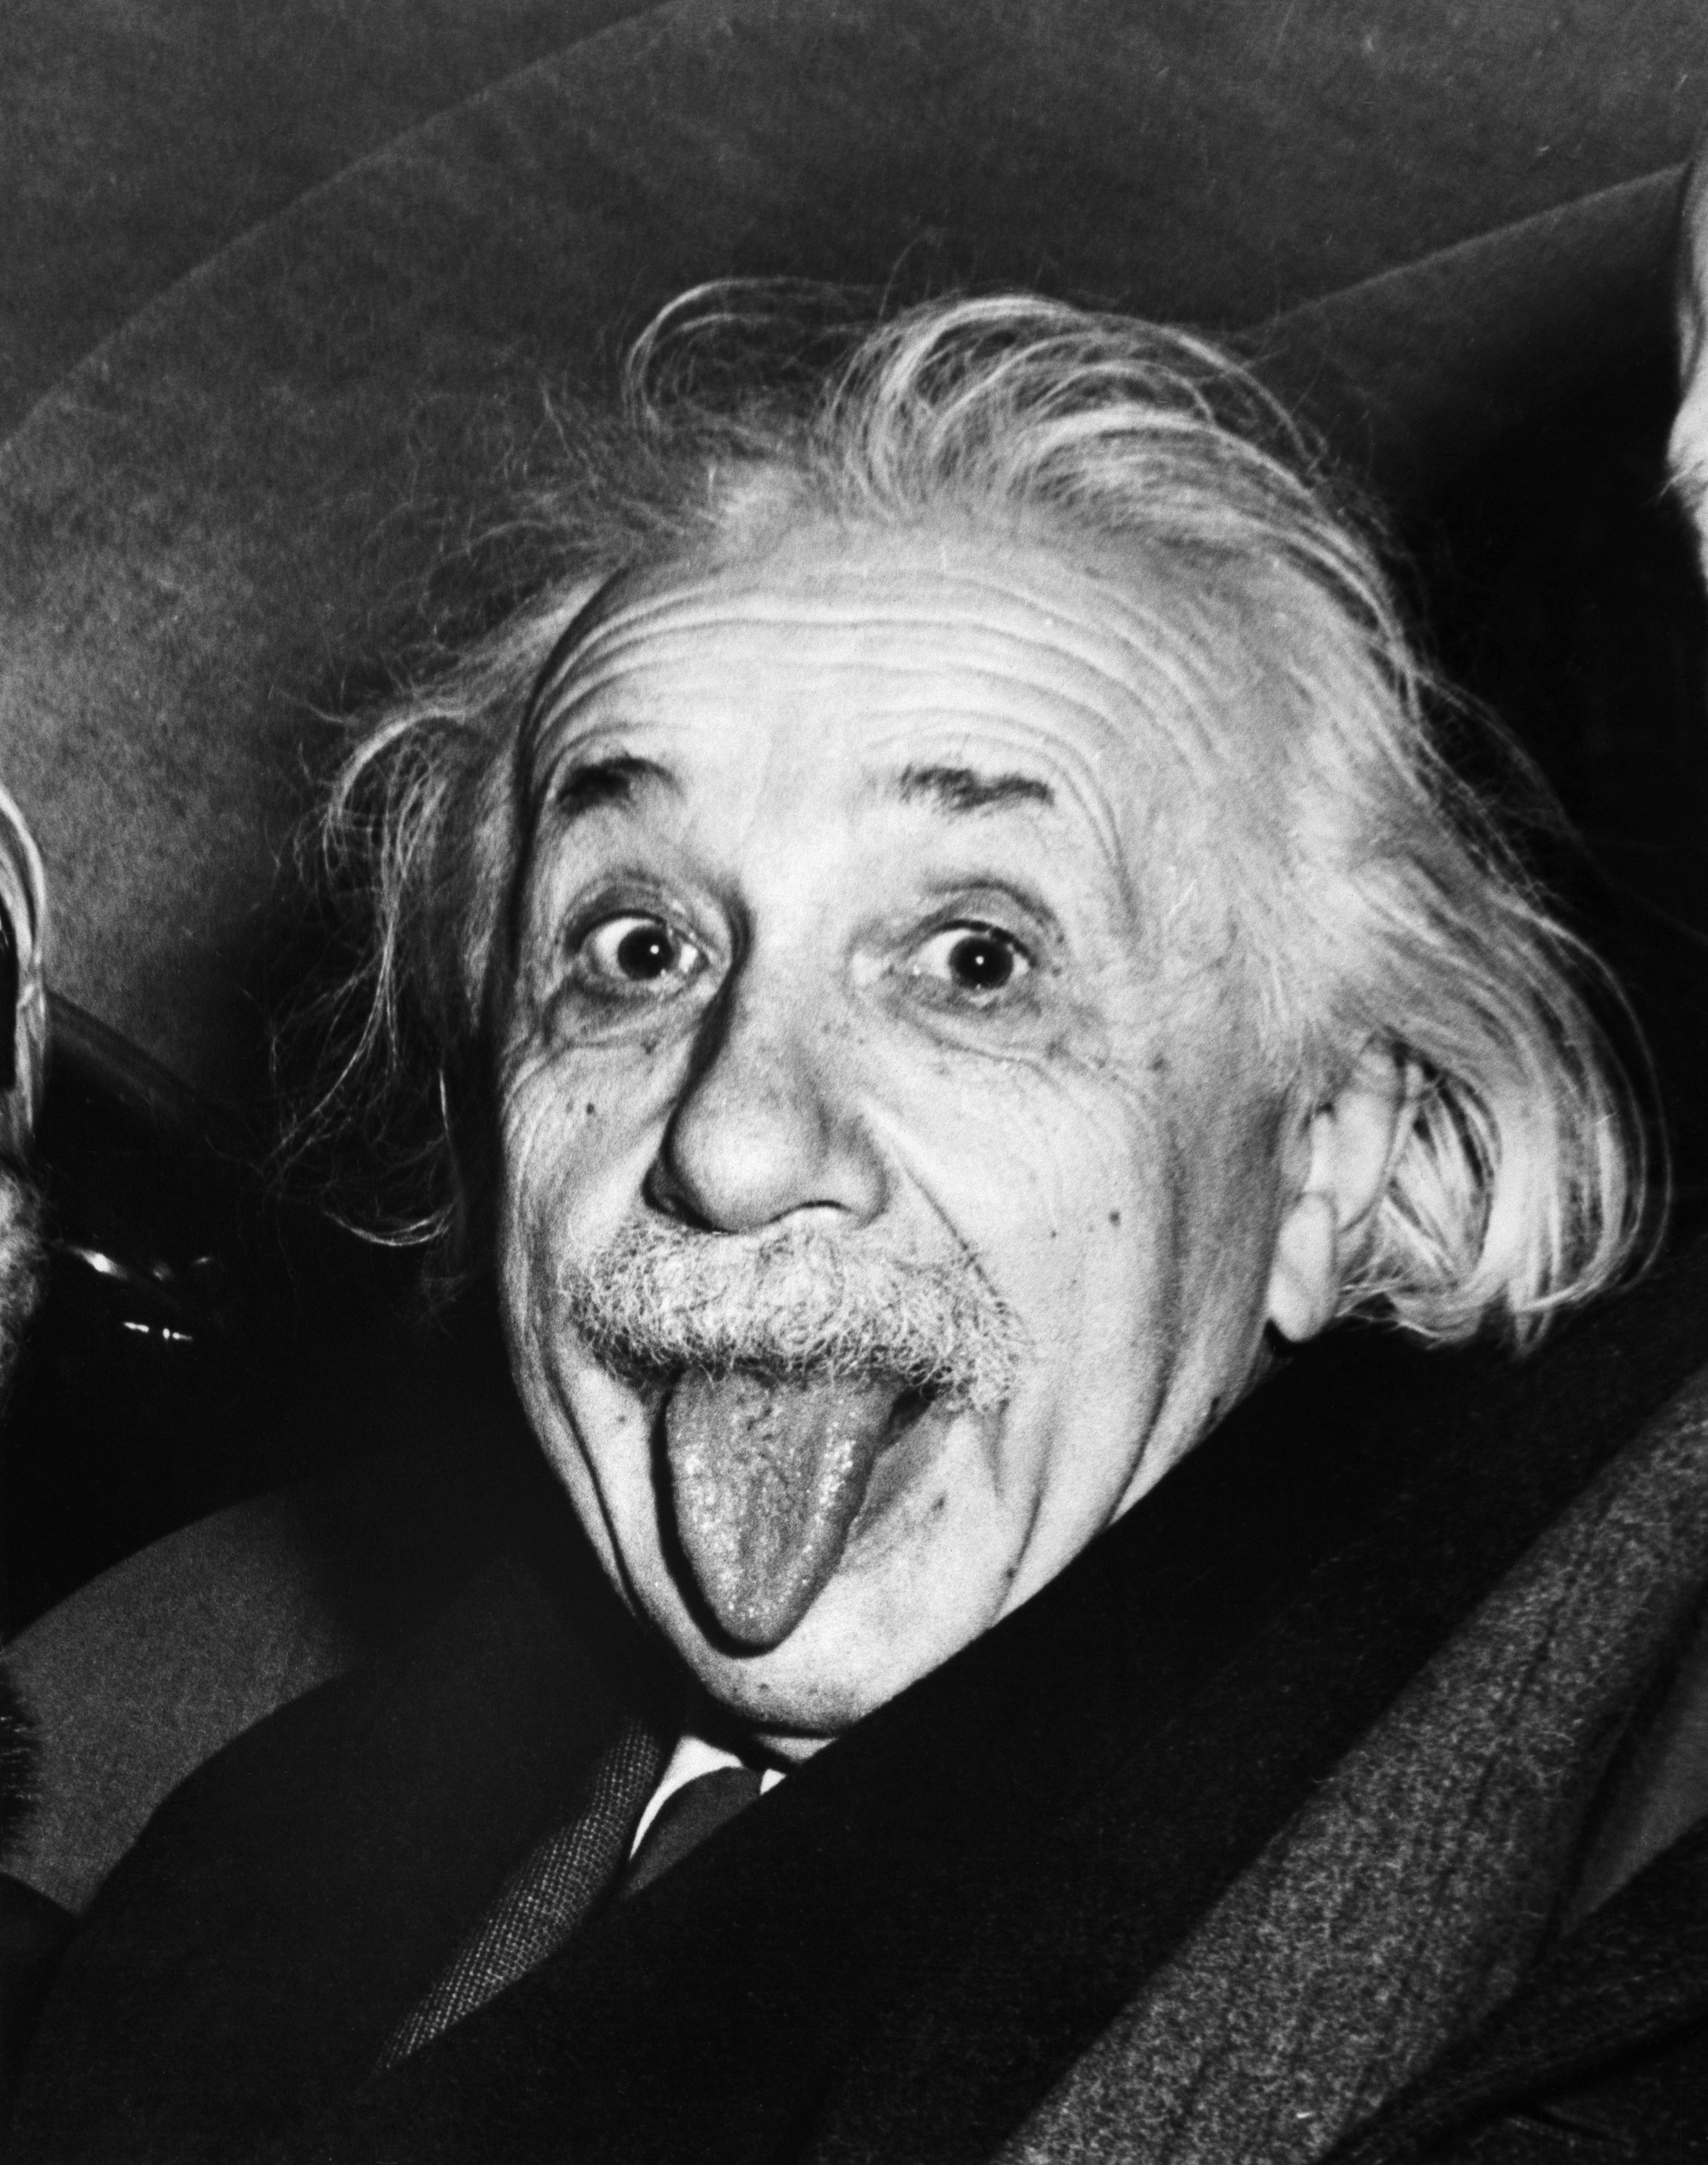 albert einstein - Albert Einstein - A problem cannot be solved